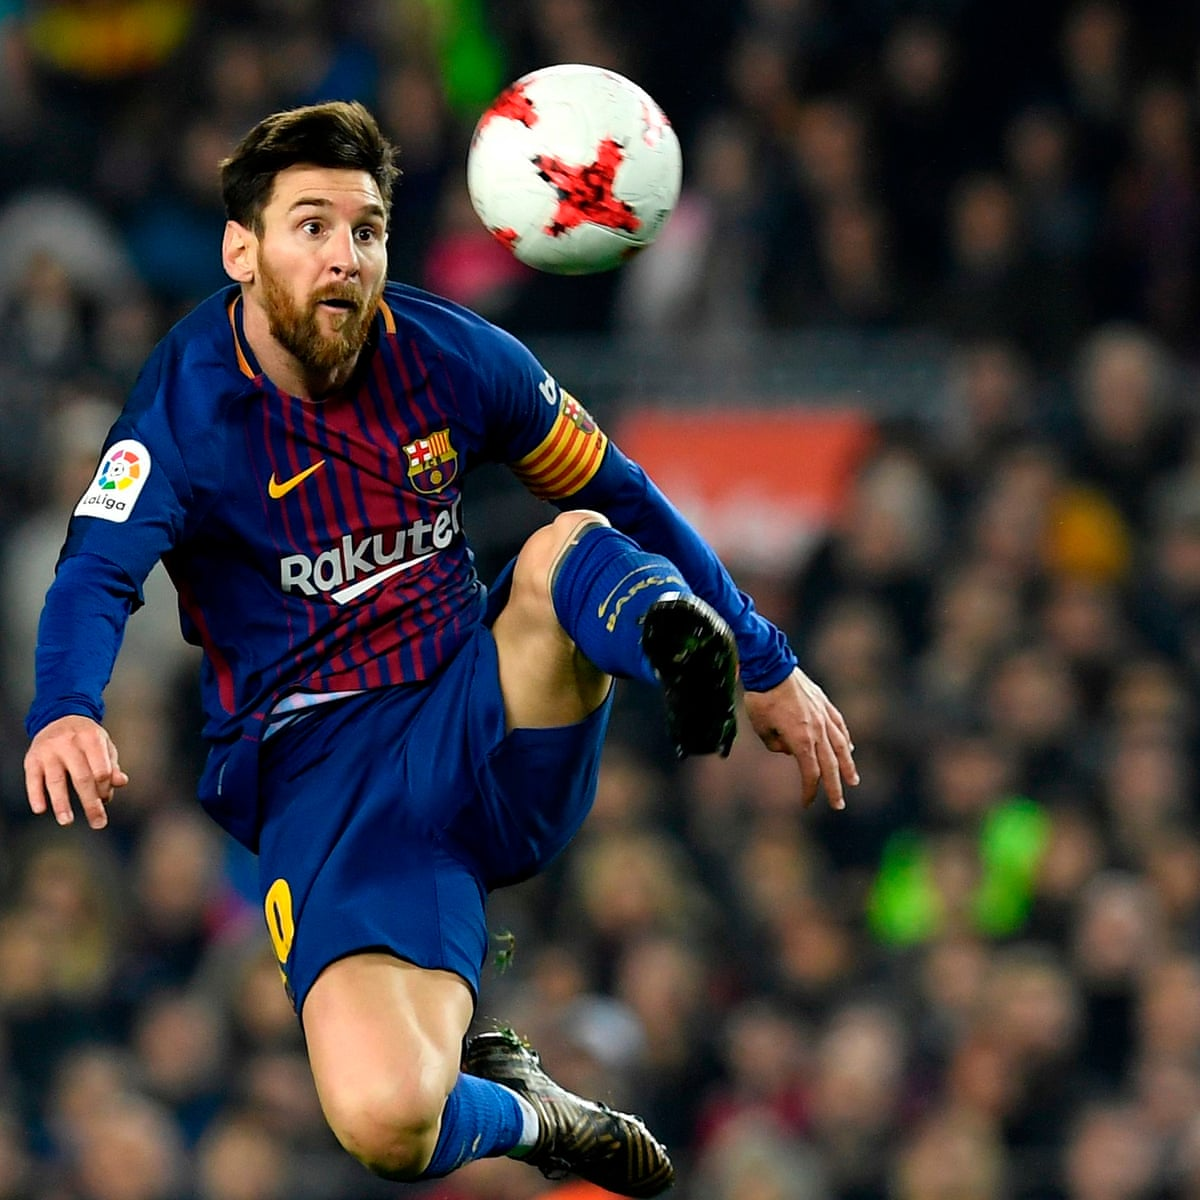 Despite The Superlatives Hype And Awards Lionel Messi Is Underrated Sean Ingle Football The Guardian